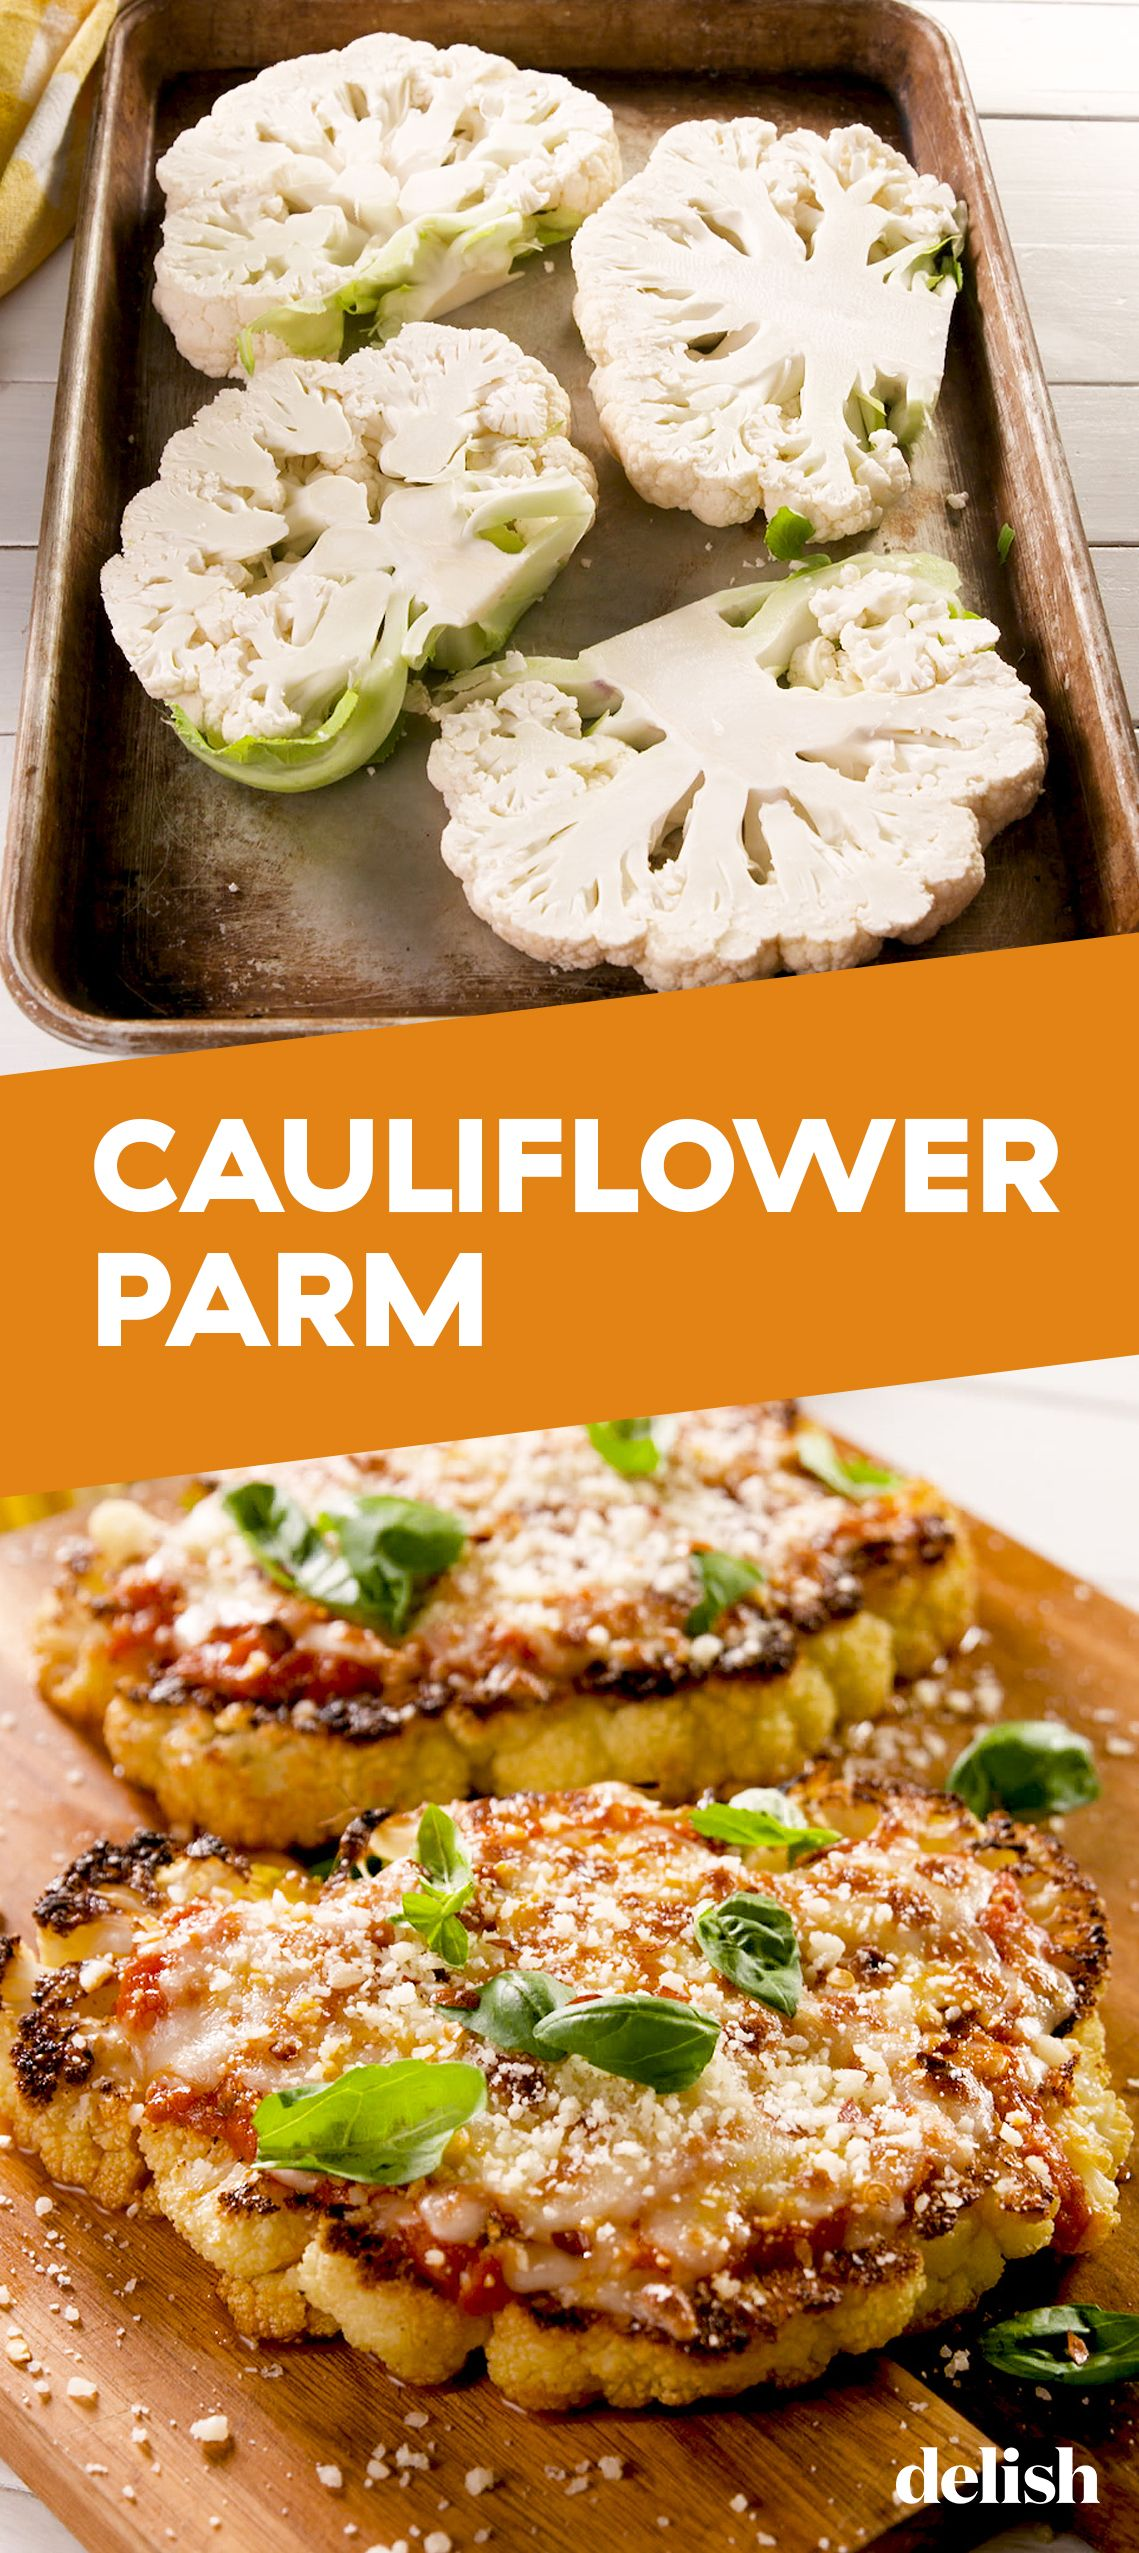 Cauliflower Parm